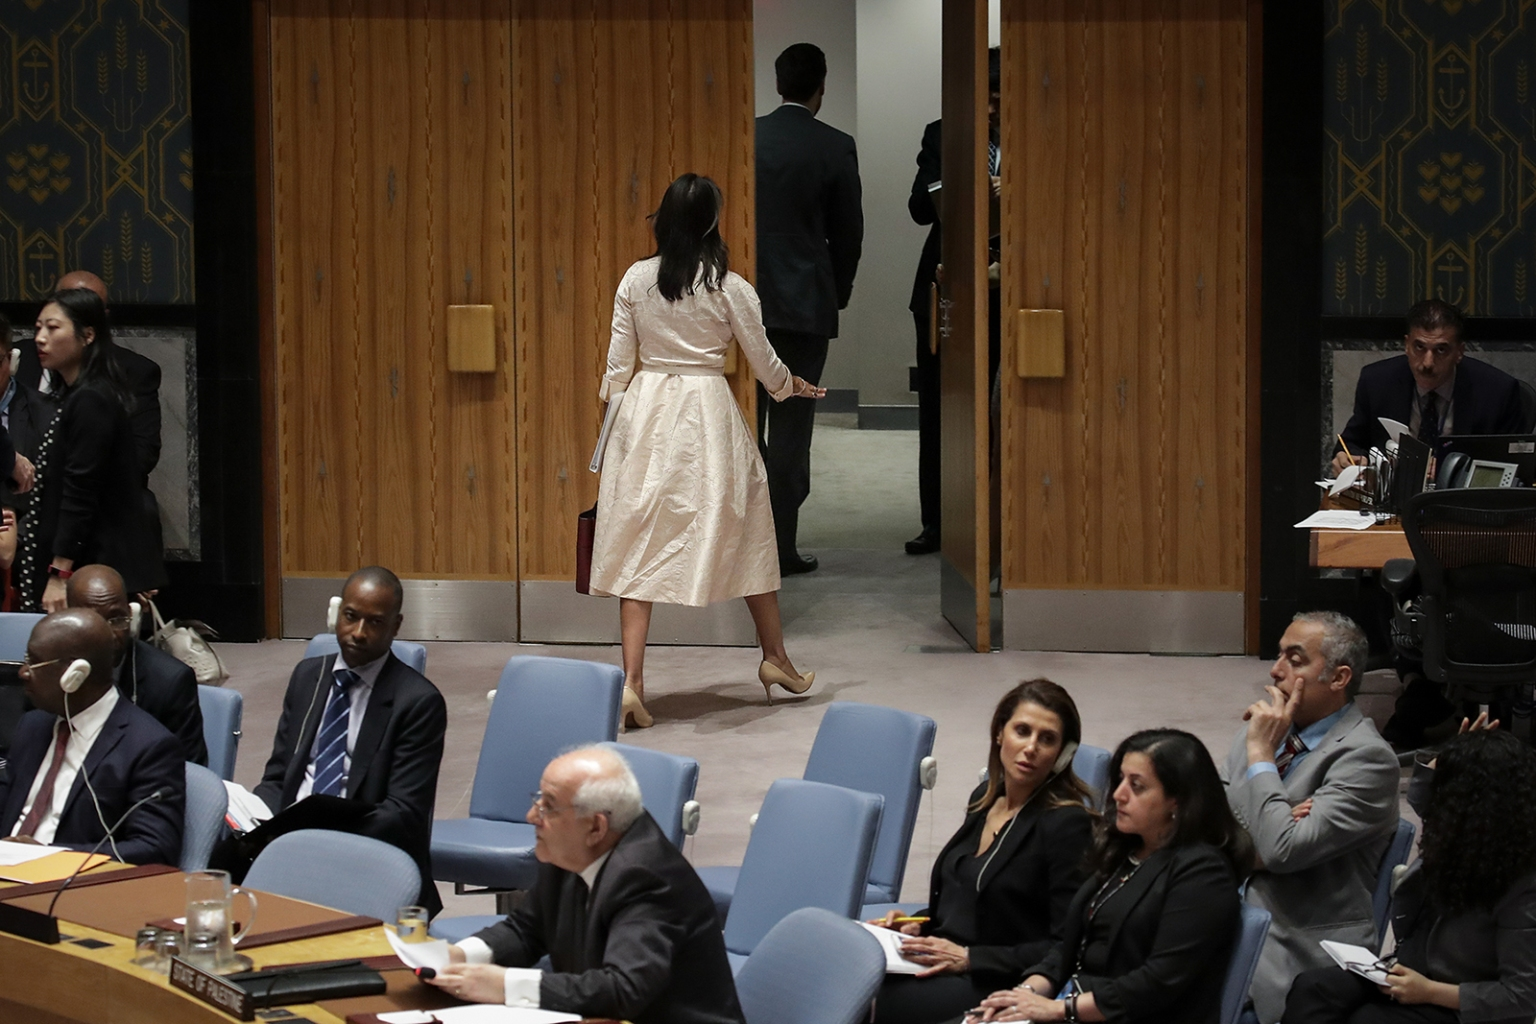 U.S. Ambassador to the United Nations Nikki Haley walks out of the chamber as Permanent Observer of Palestine to the U.N. Riyad Mansour begins to speak at a U.N. Security Council meeting on May 15 concerning the violence at the border of Israel and the Gaza Strip. DREW ANGERER/GETTY IMAGES